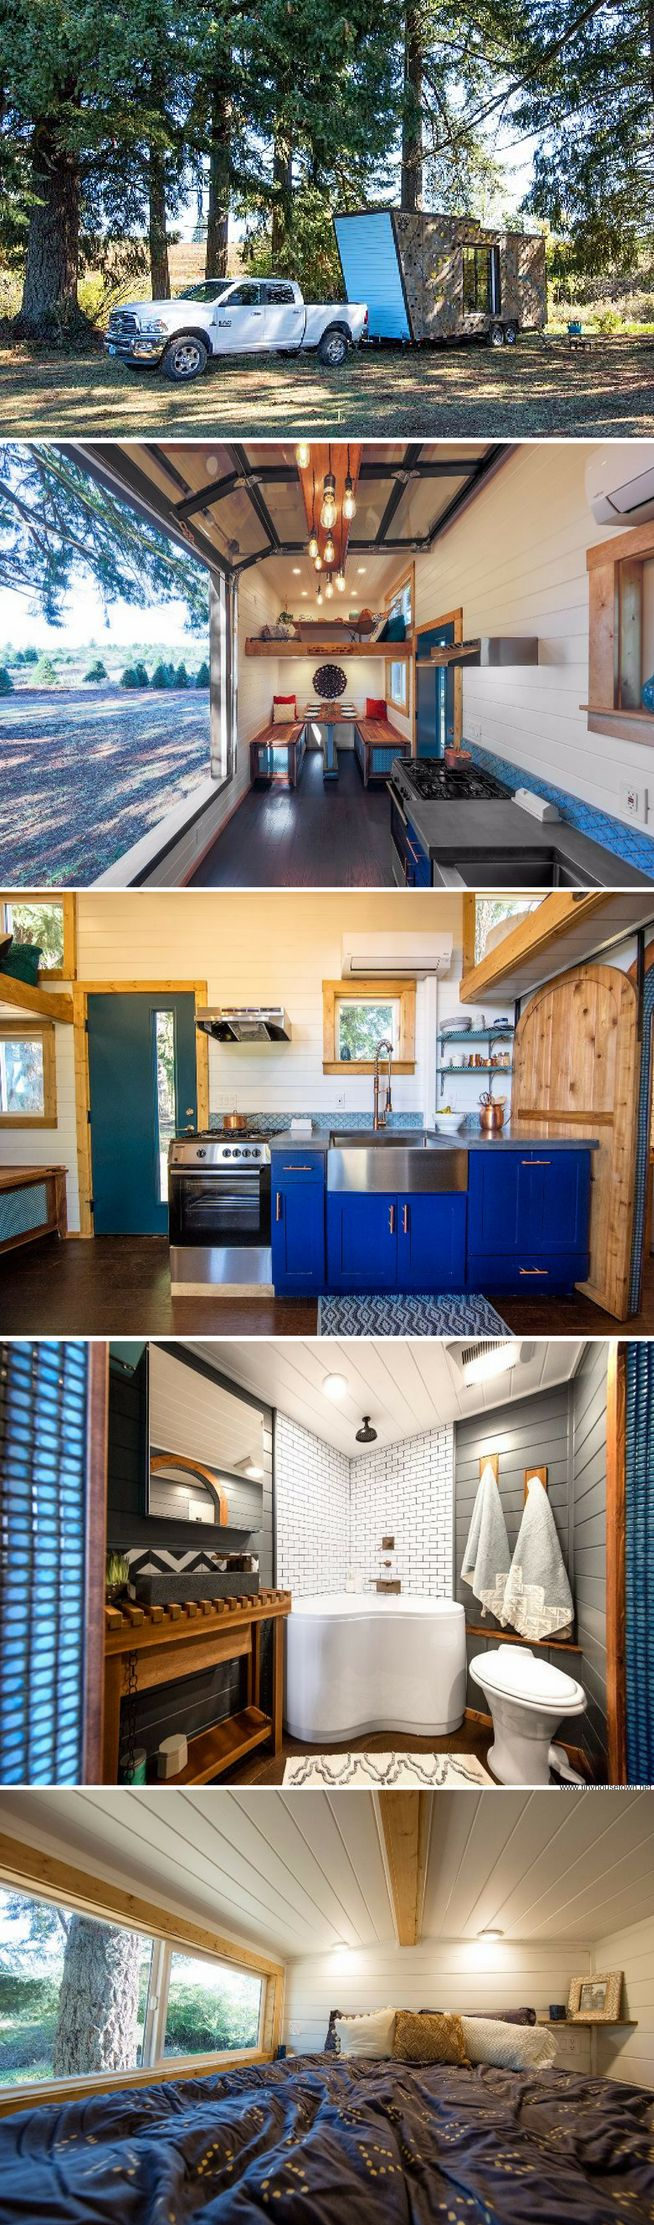 a tiny house from tiny heirloom with a bouldering wall on the homes exterior - Tiny House Mobile